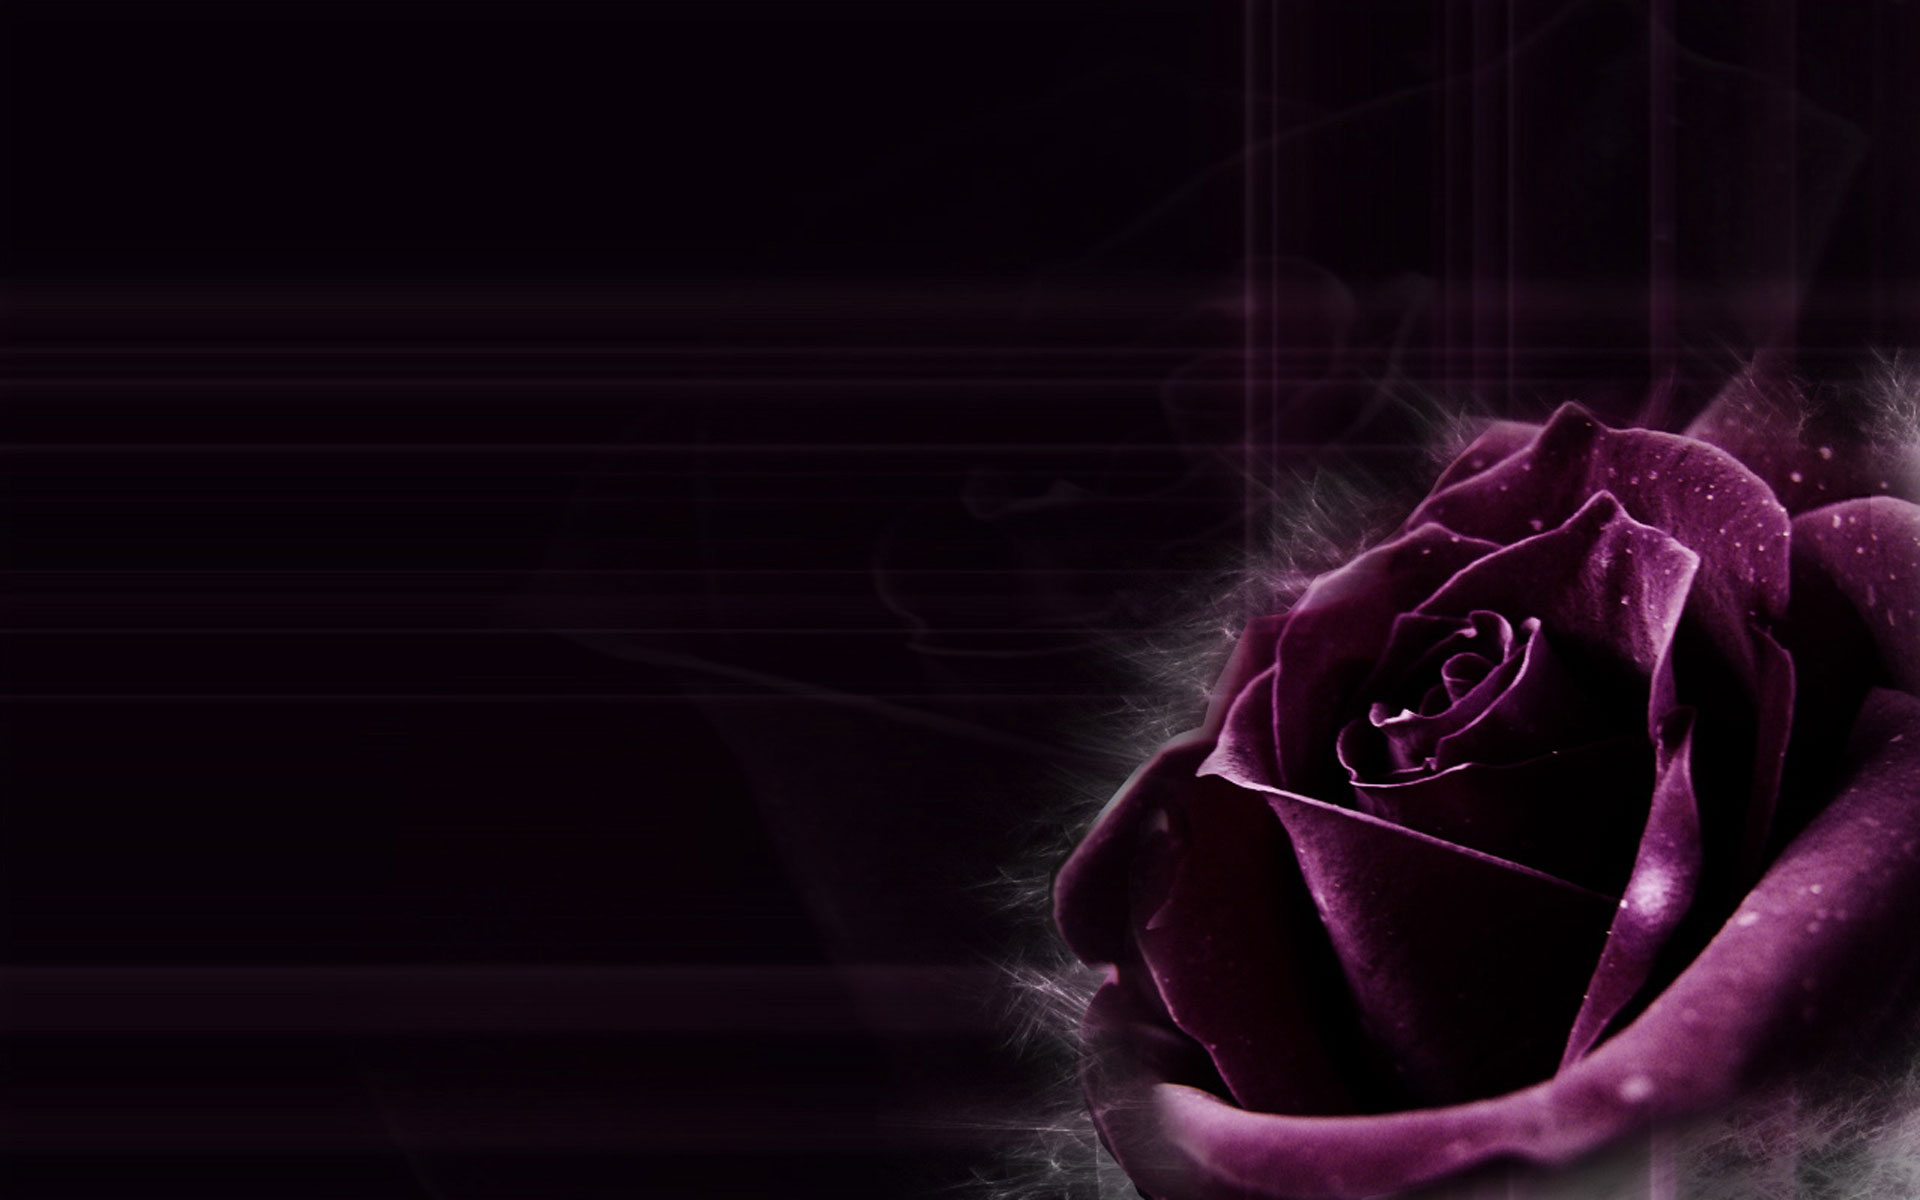 Purple roses wallpaper 15 hd wallpaper for Can you get purple roses